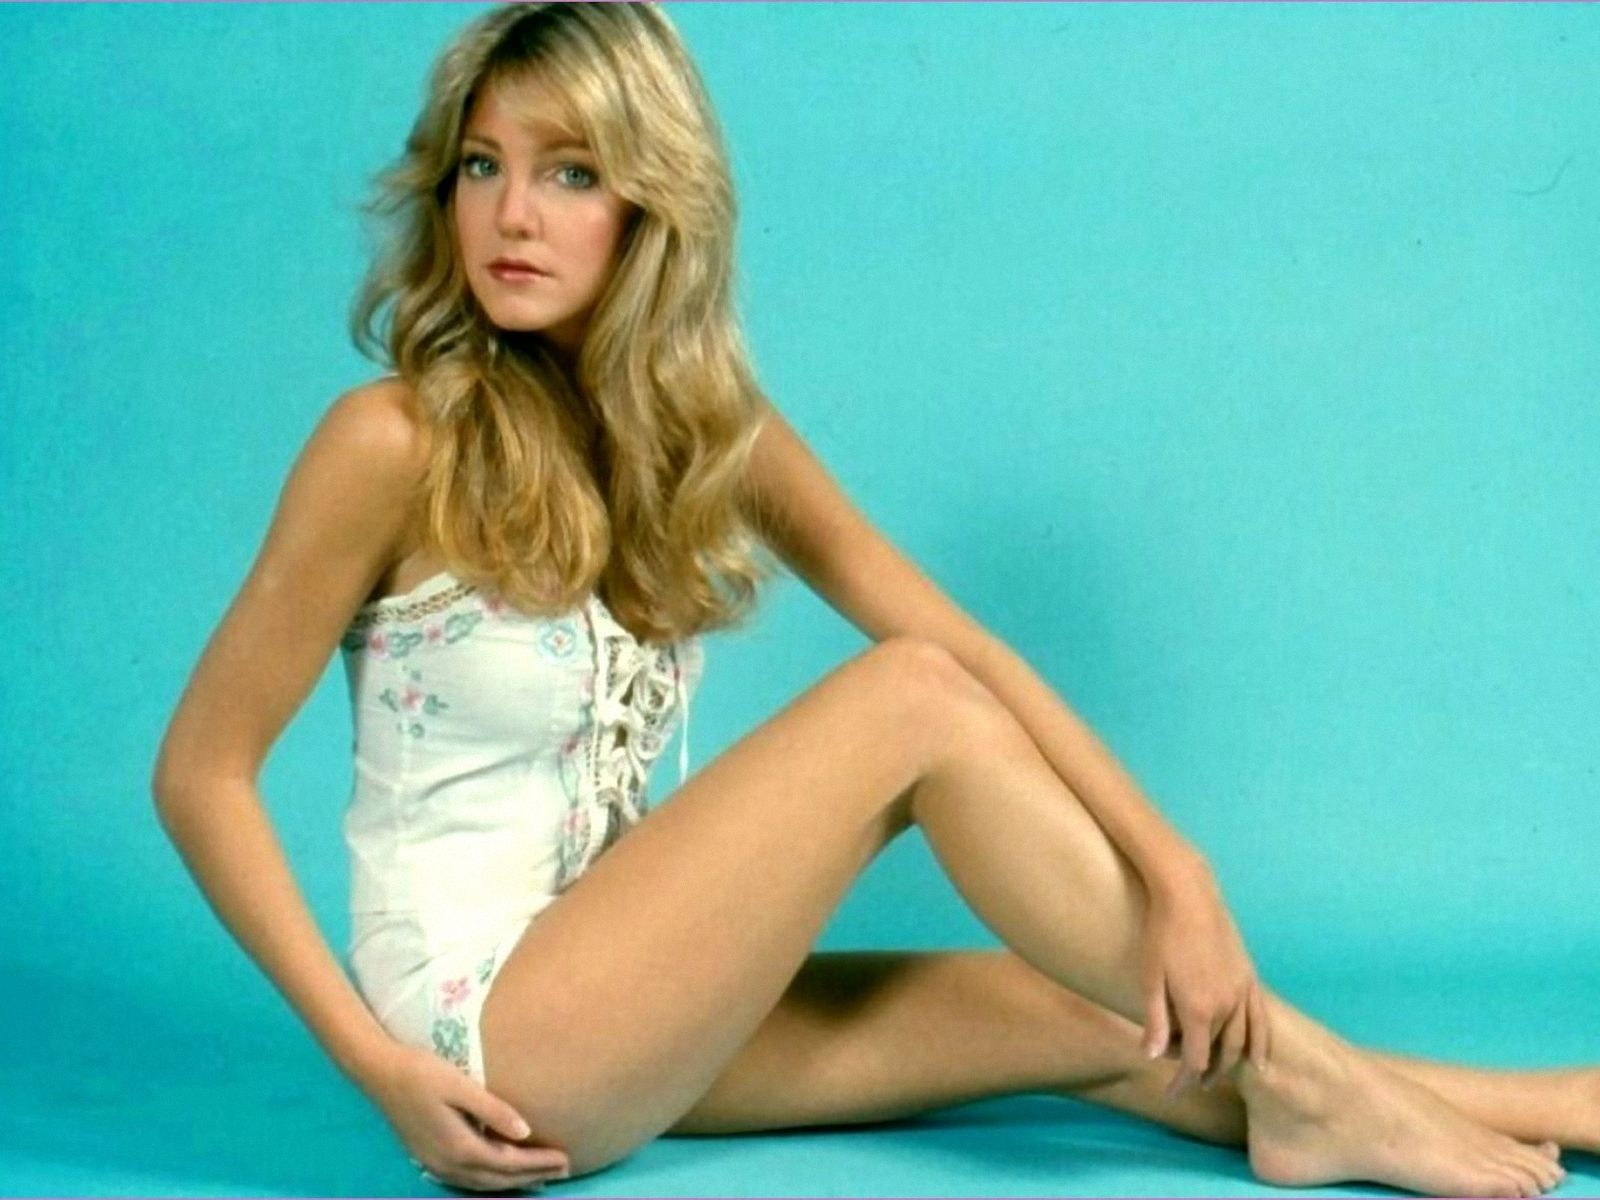 1600x1200 - Heather Locklear Wallpapers 21